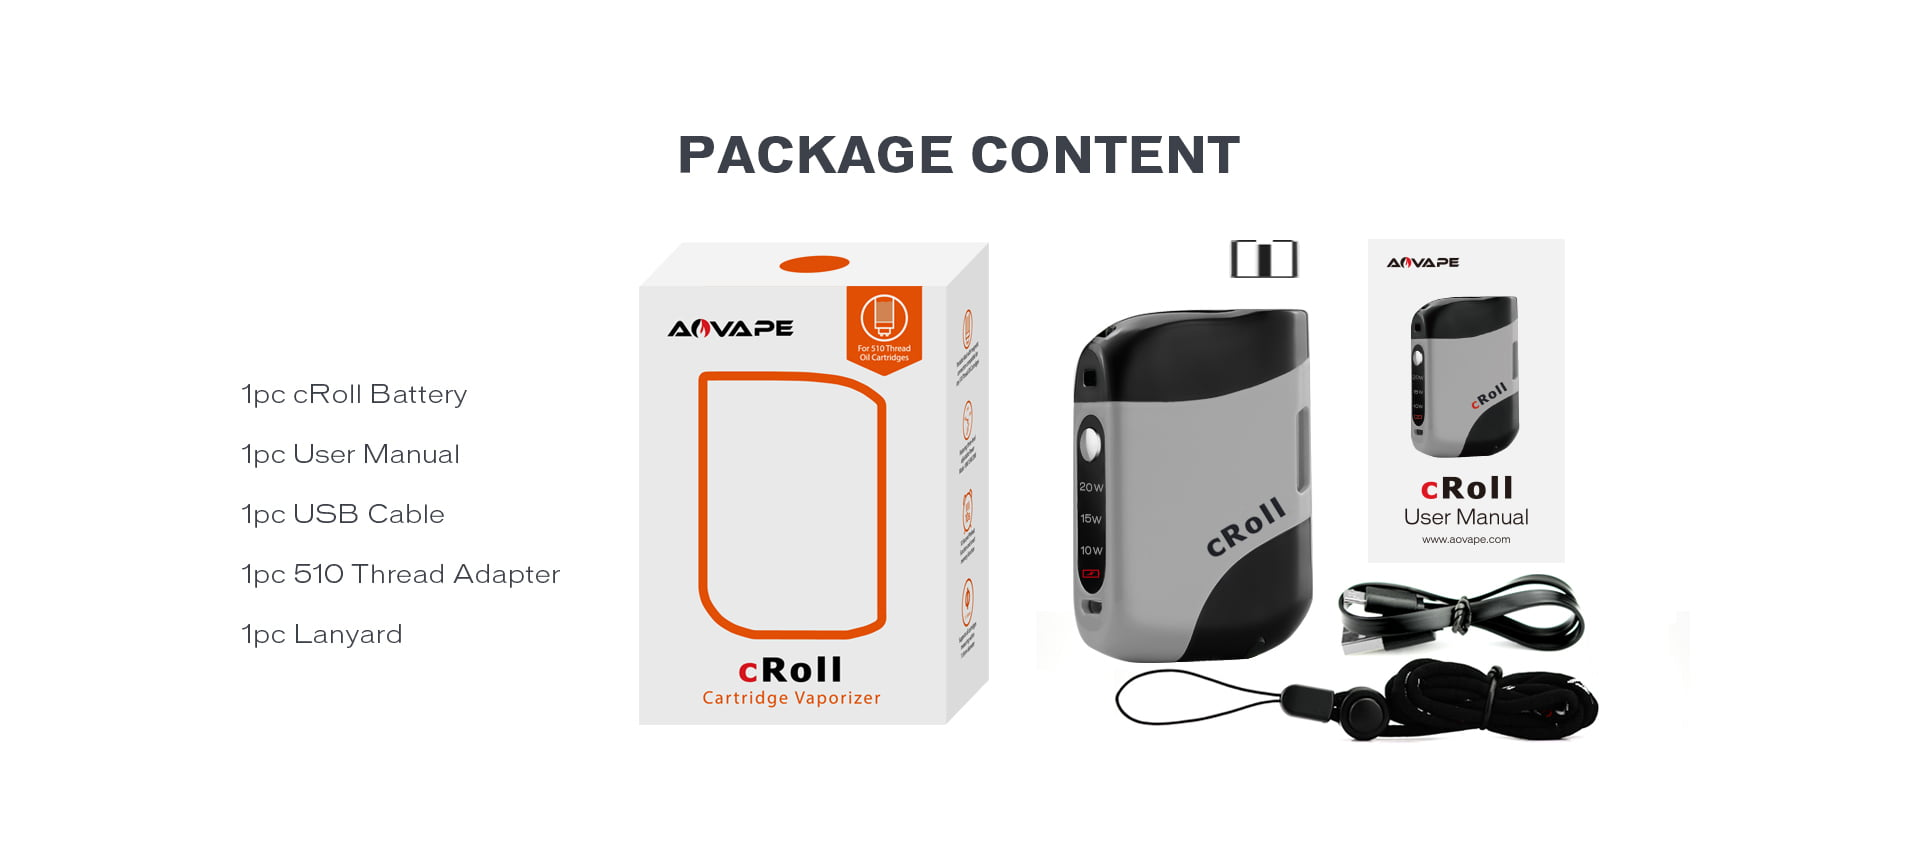 Aovape cRoll Dab Pen Battery Package